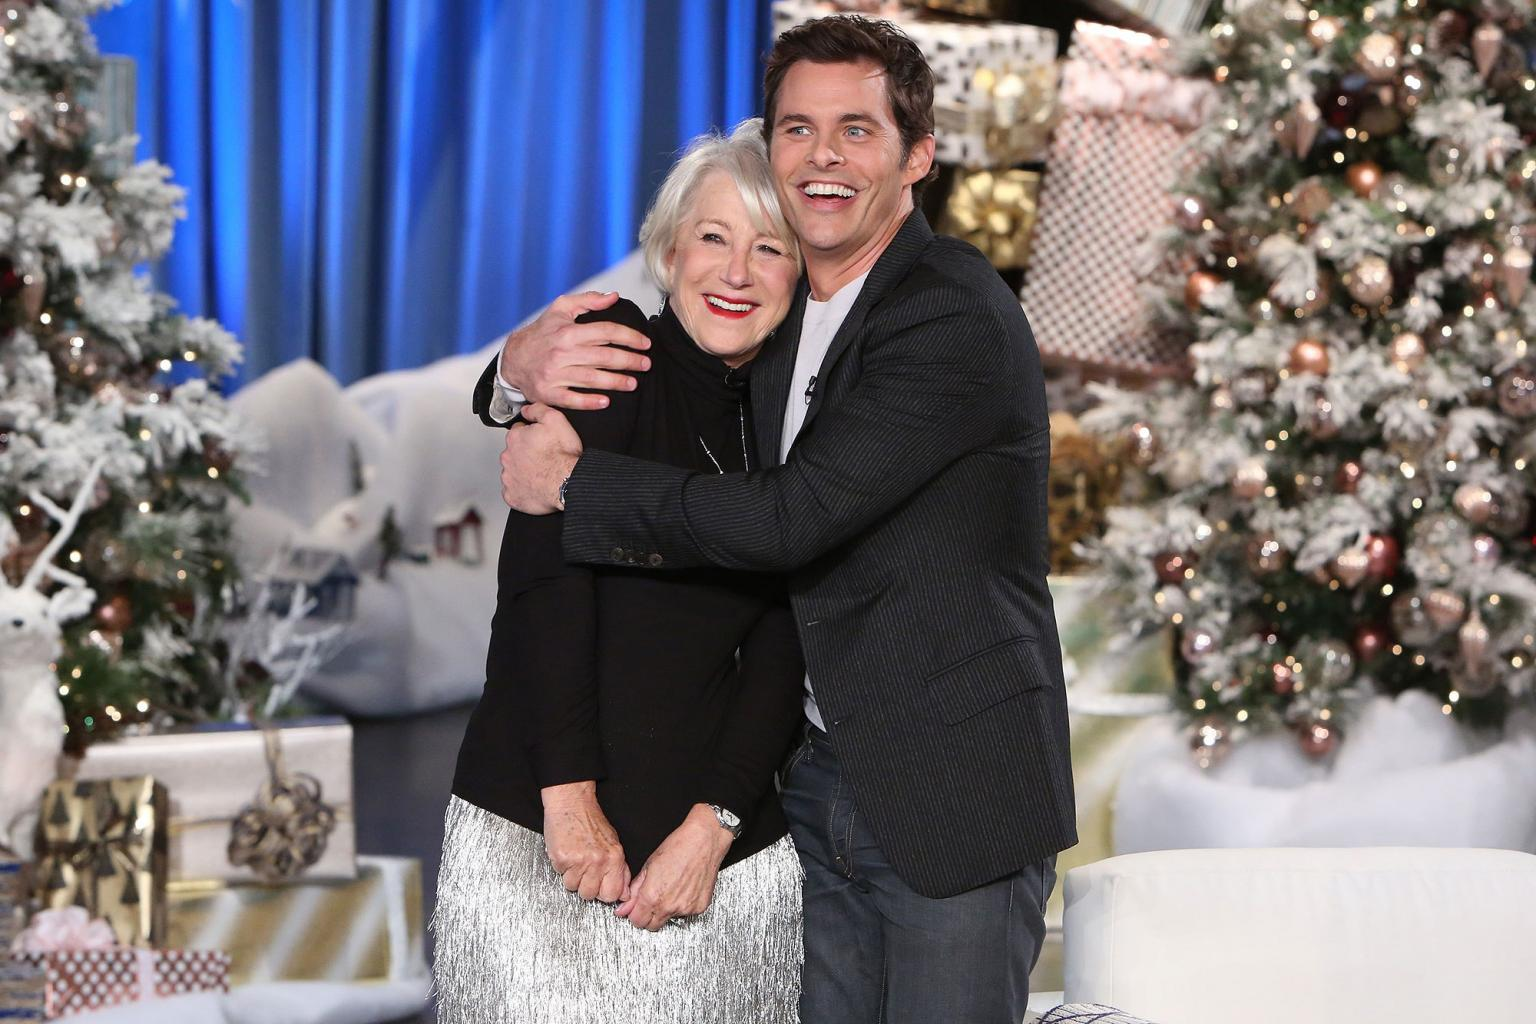 James Marsden Gets a Kiss from His Celebrity Crush Helen Mirren